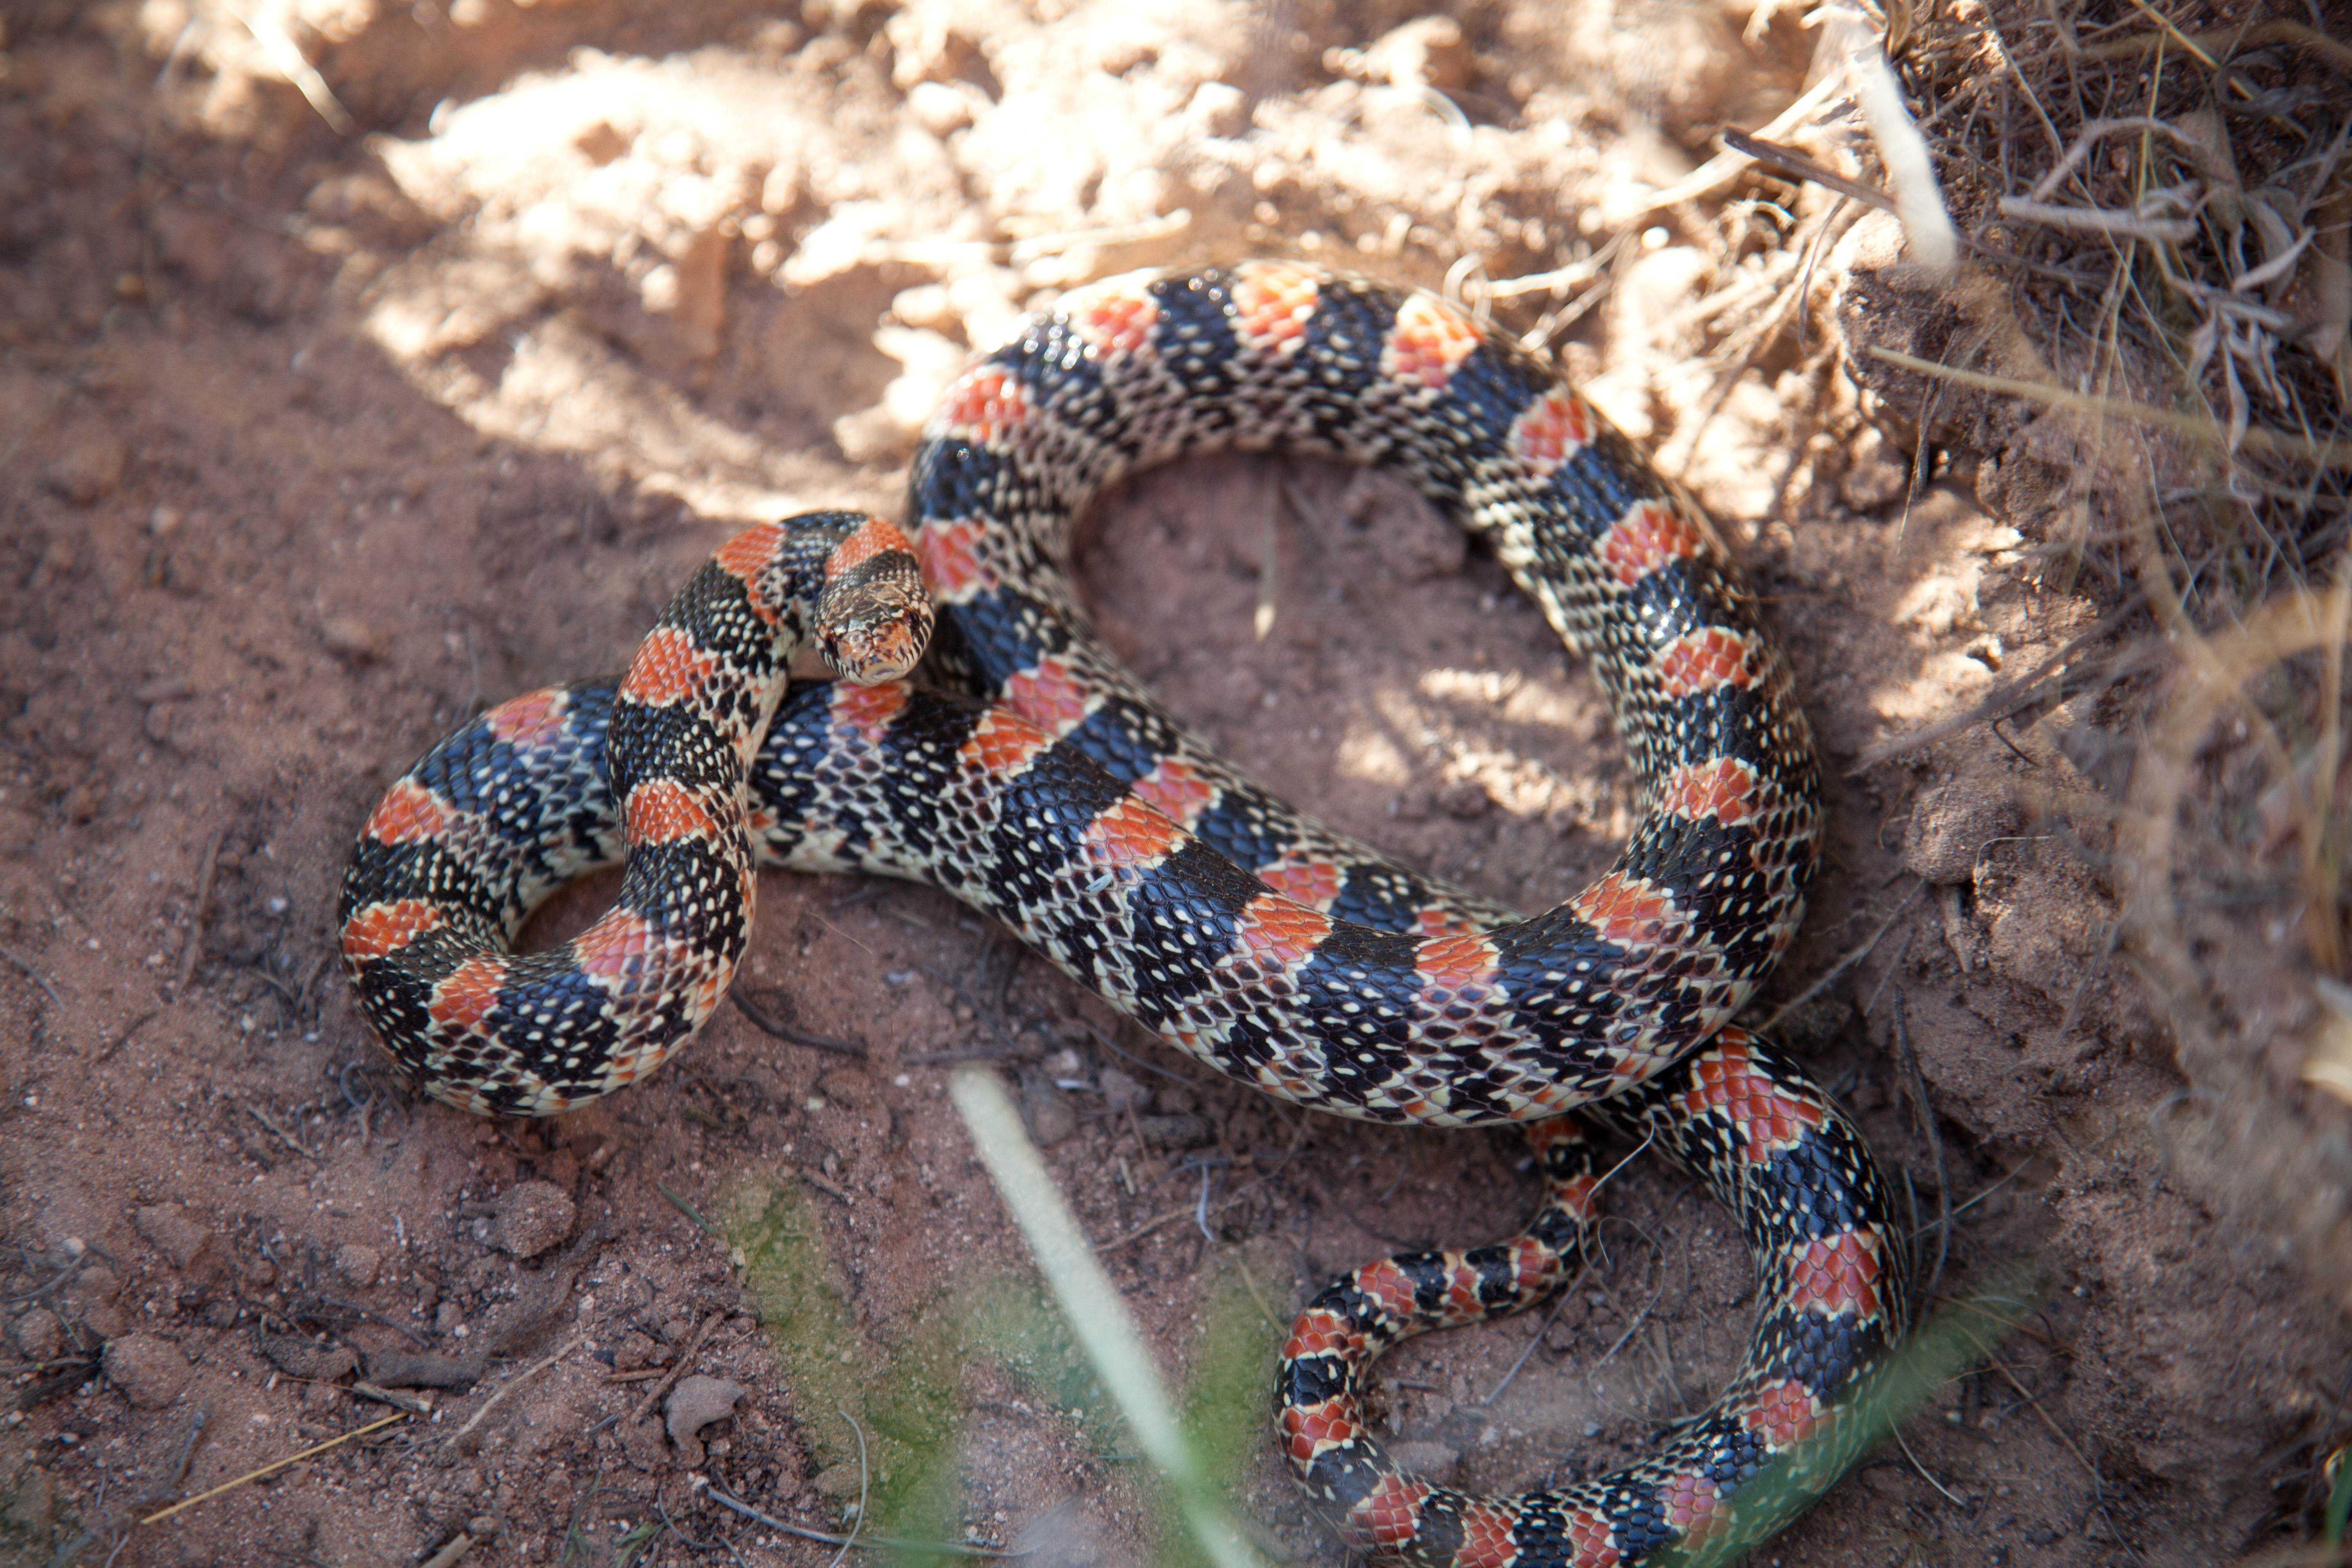 Free photograph; long, nosed, snakes, nocturnal, inhabitants, dry, prairies, deserts